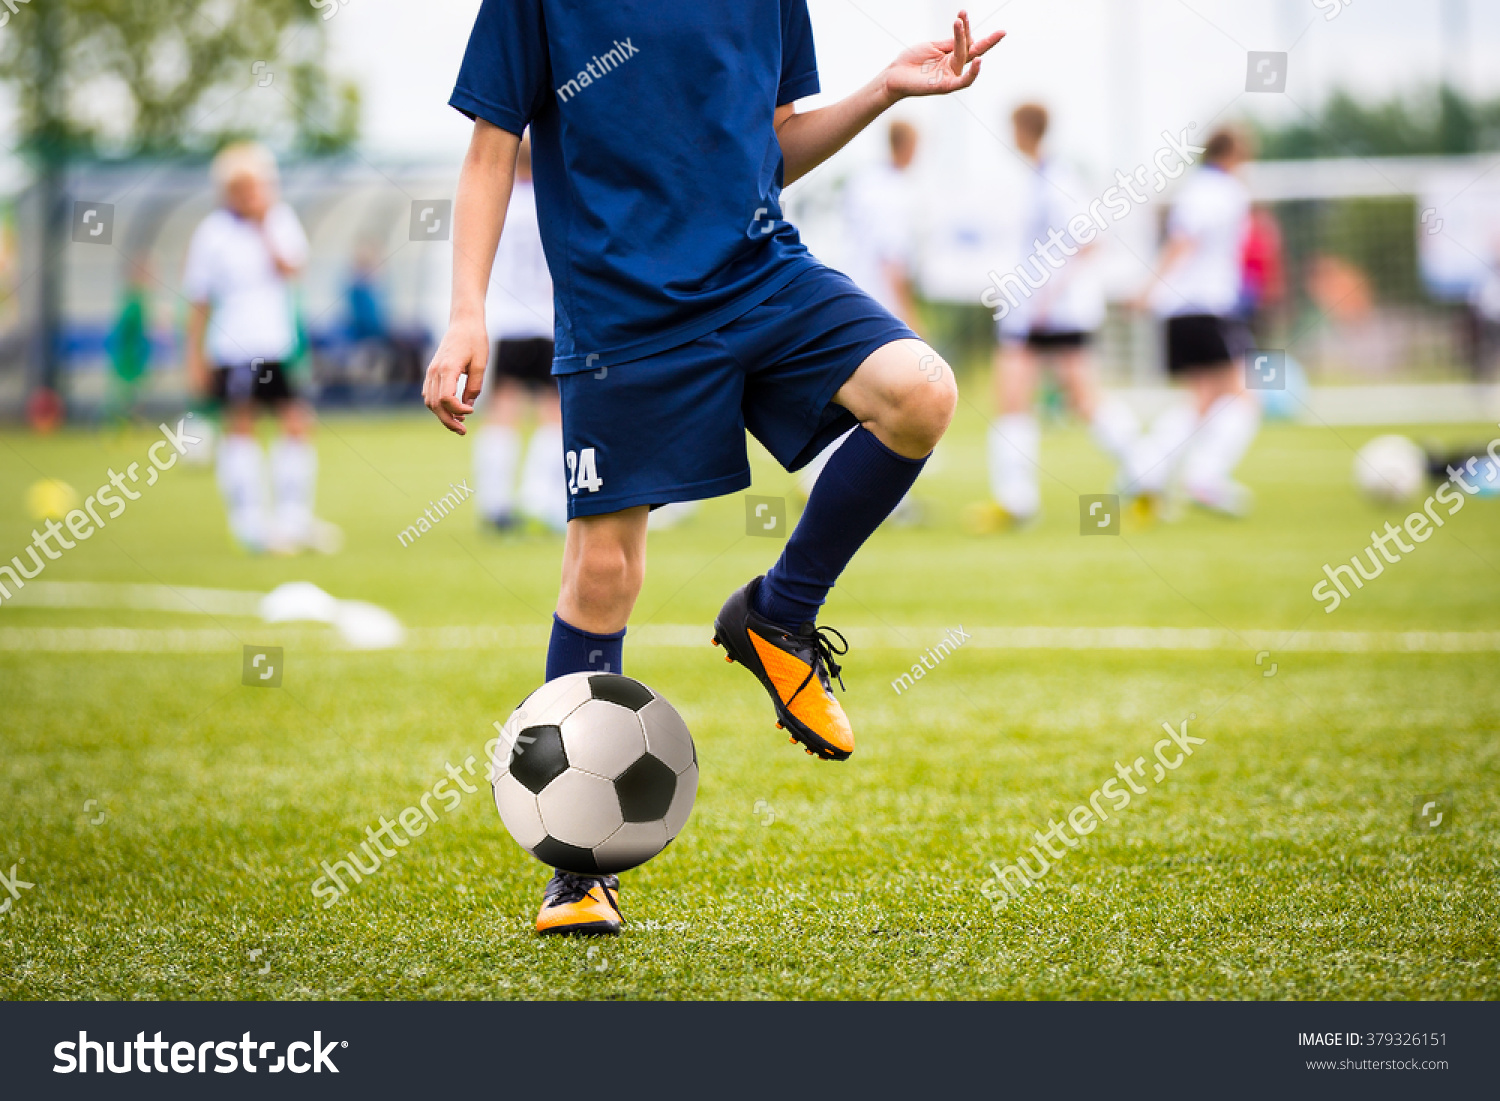 Teenagers Boys Playing Soccer Football Match. Young